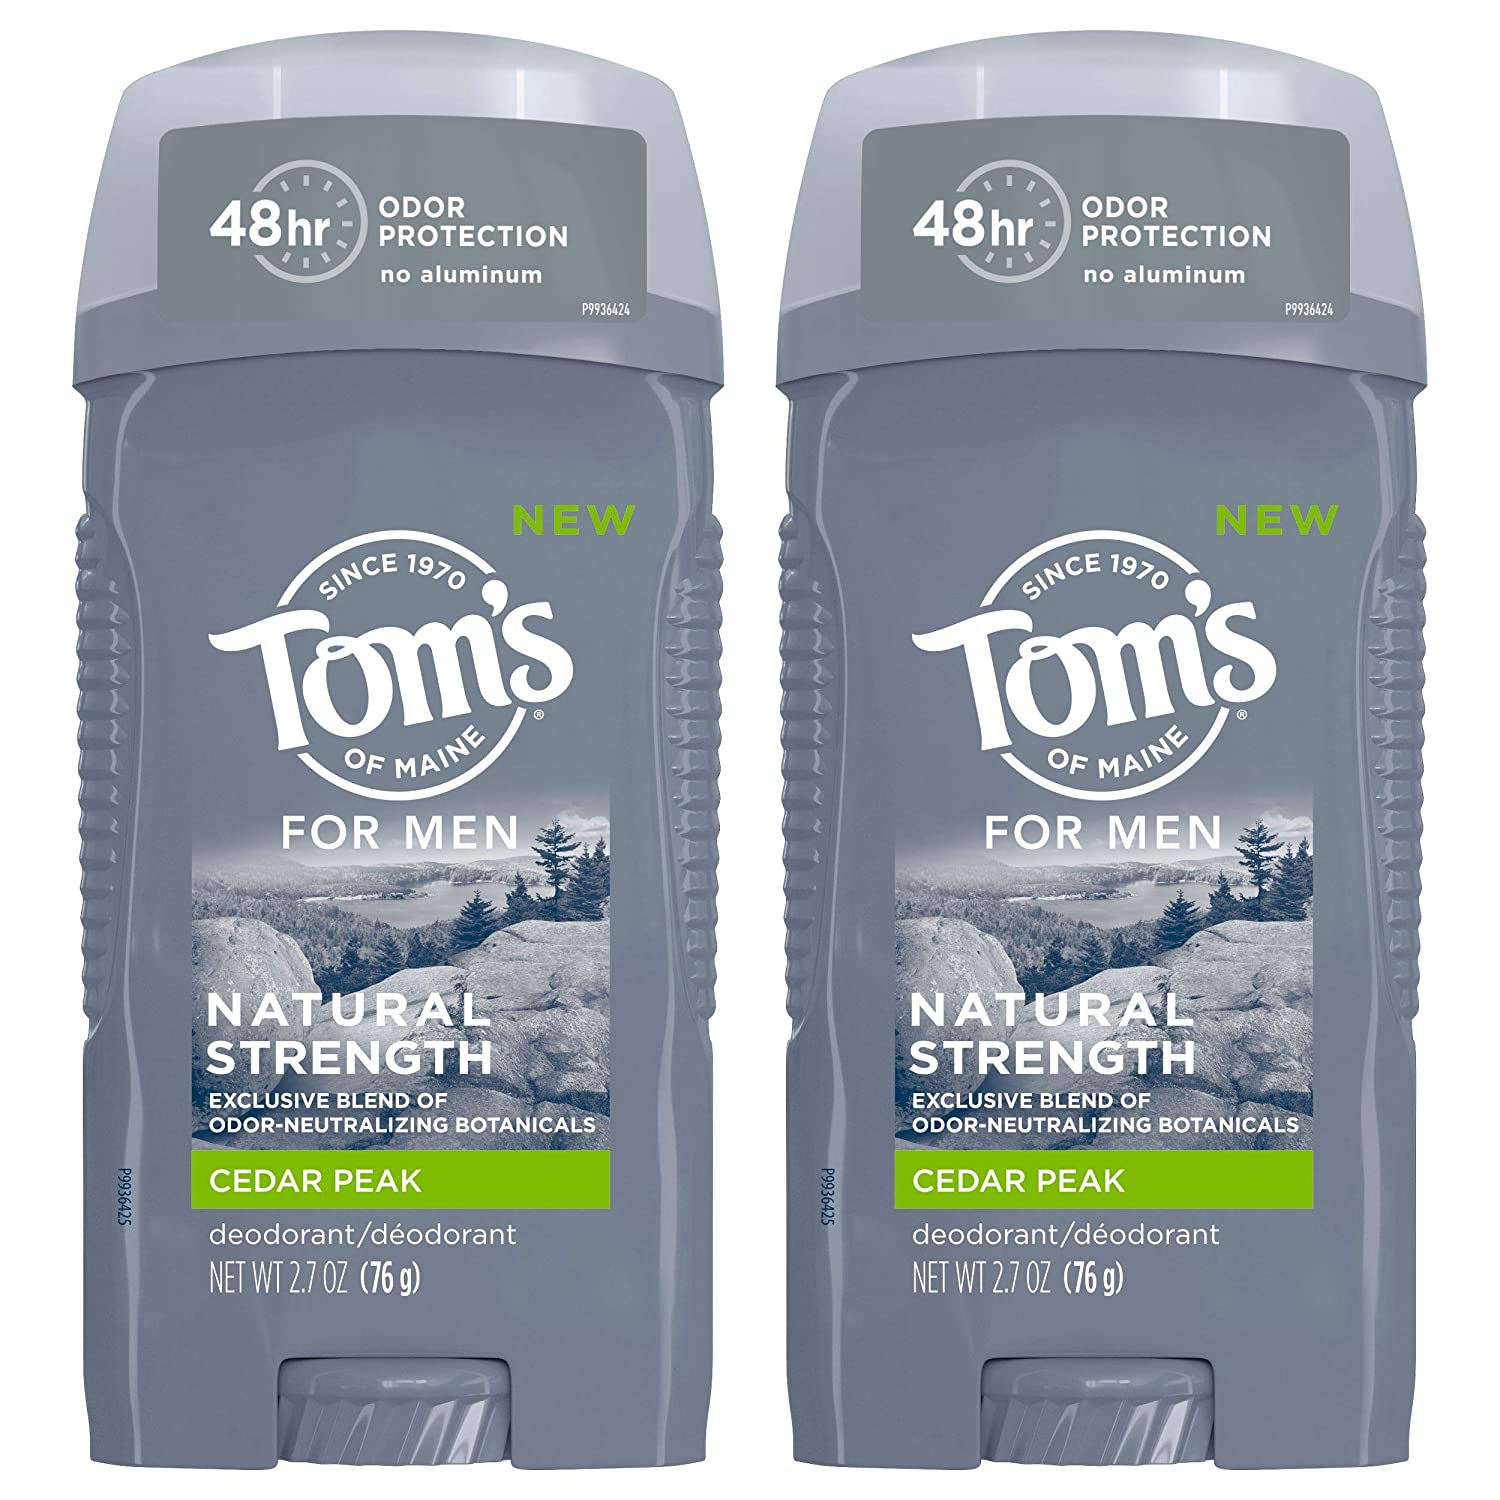 Tom's of Maine Natural Strength Deodorant Men Some reservation All items in the store Aluminum-Free for